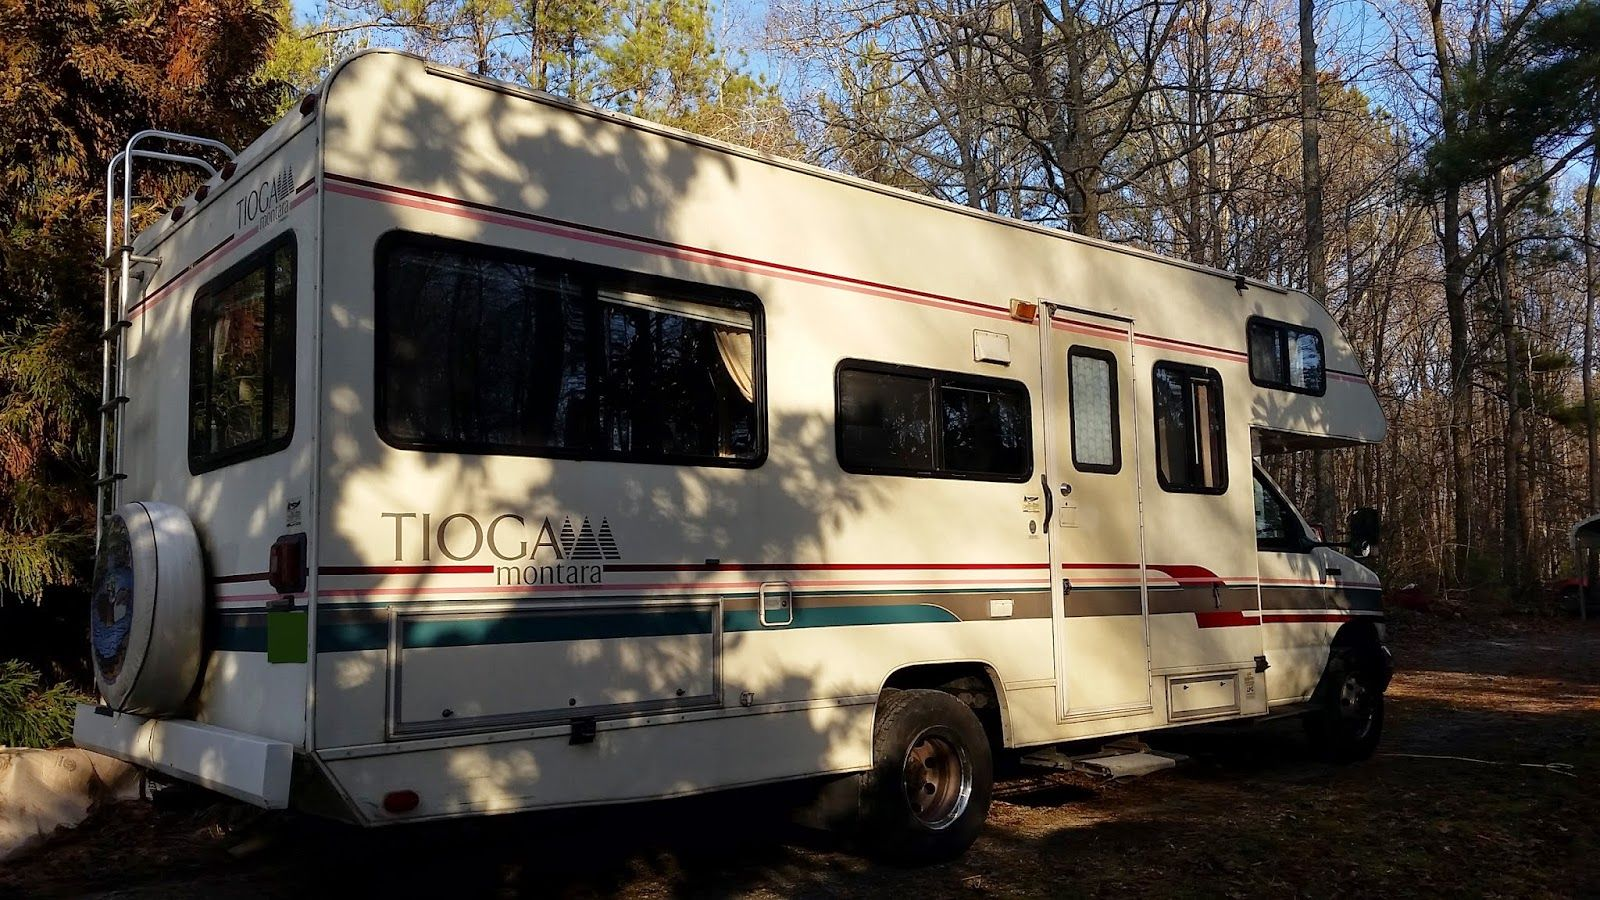 The Tioga Project 1994 Tioga Montara By Fleetwood The Beginning Rv Remodel Motorhome Remodel Recreational Vehicles